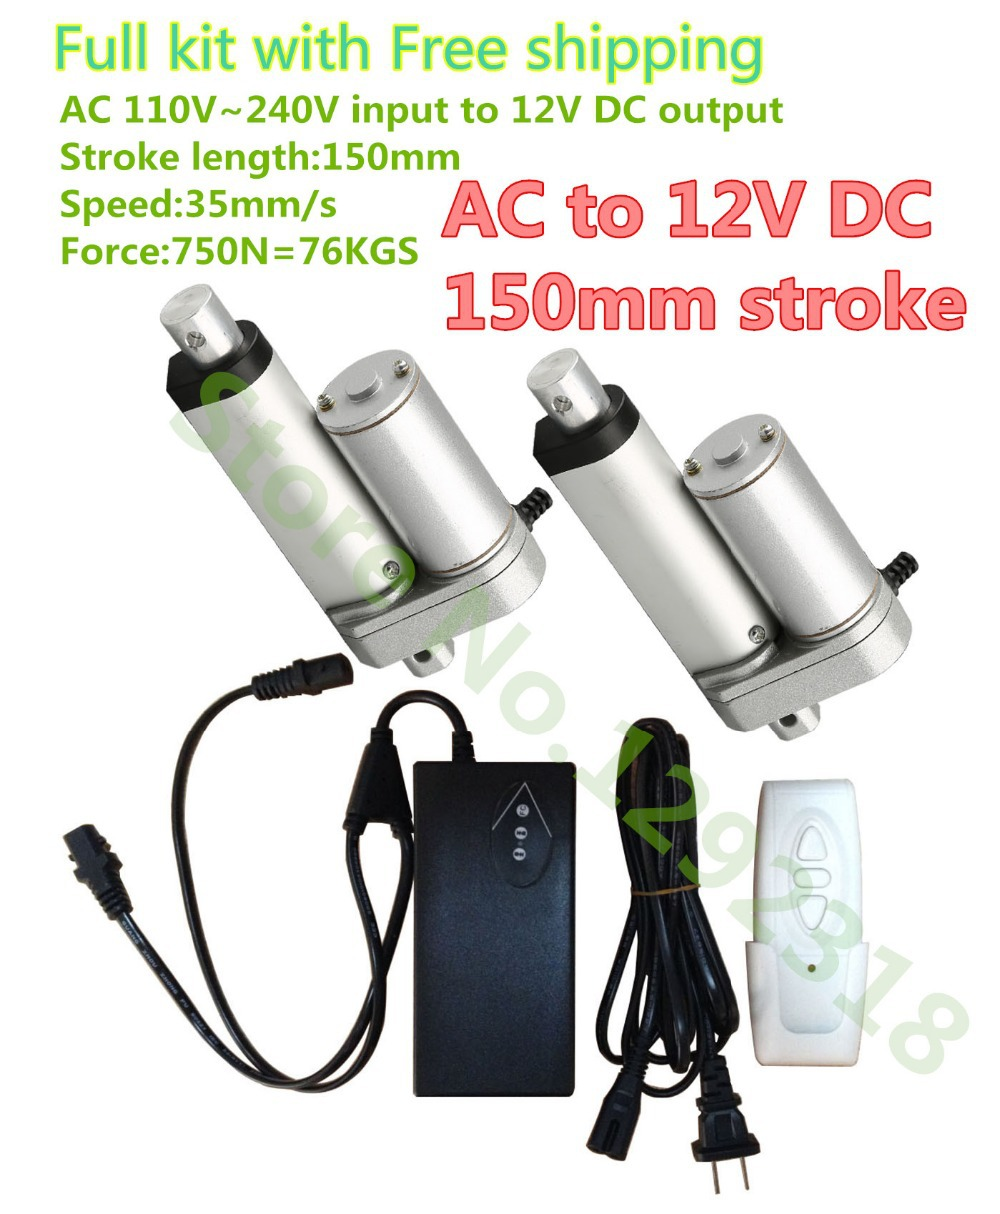 12V DC wireless control system 12V DC linear actuators remotes controller for home appliance etc.(China (Mainland))